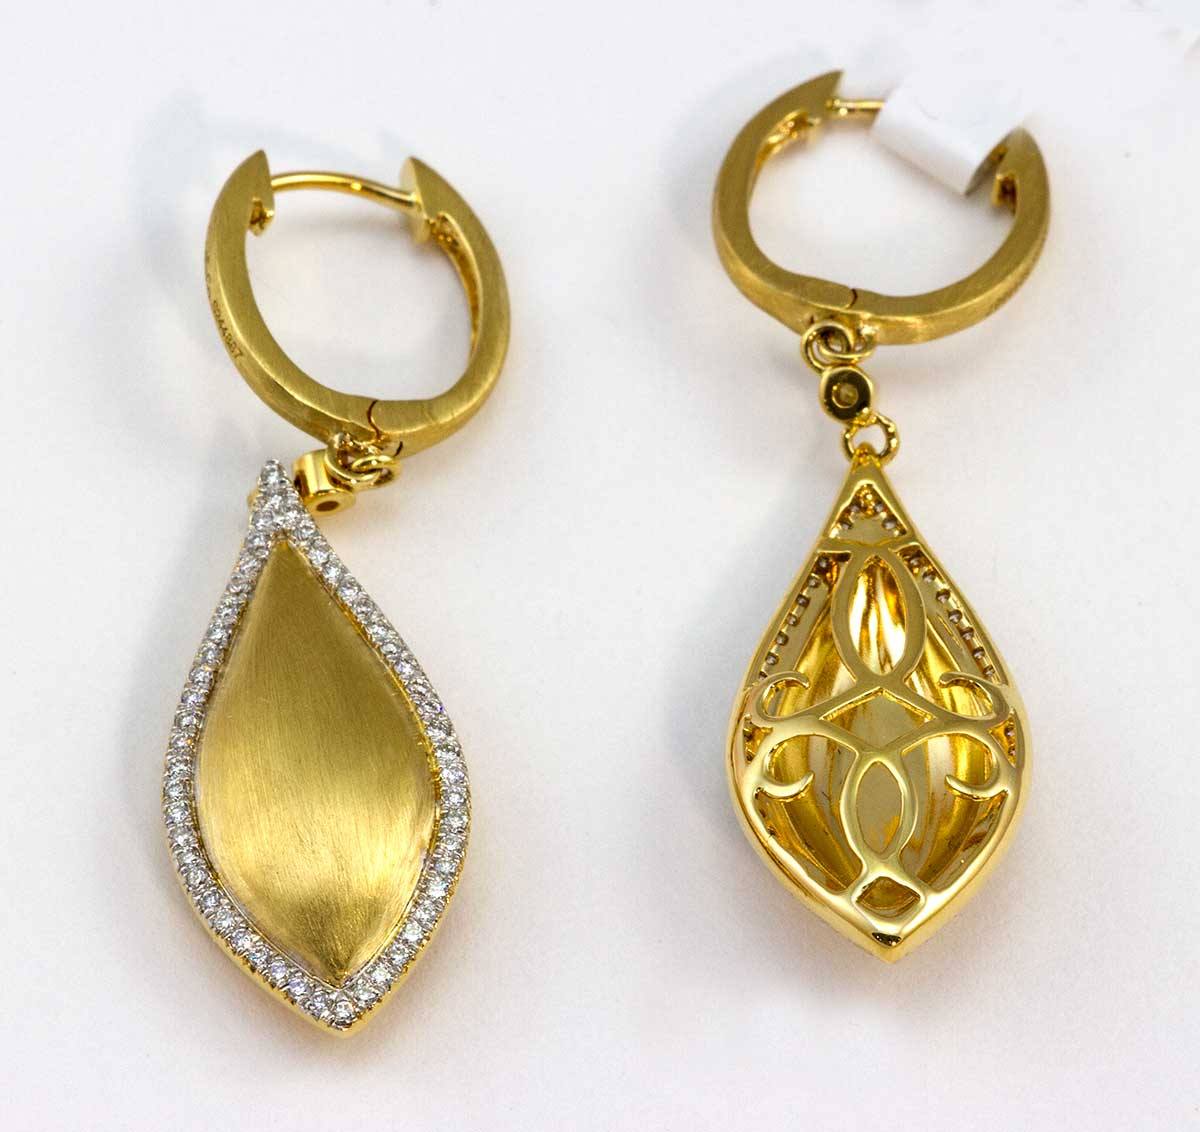 Drop earrings with pave diamond edging